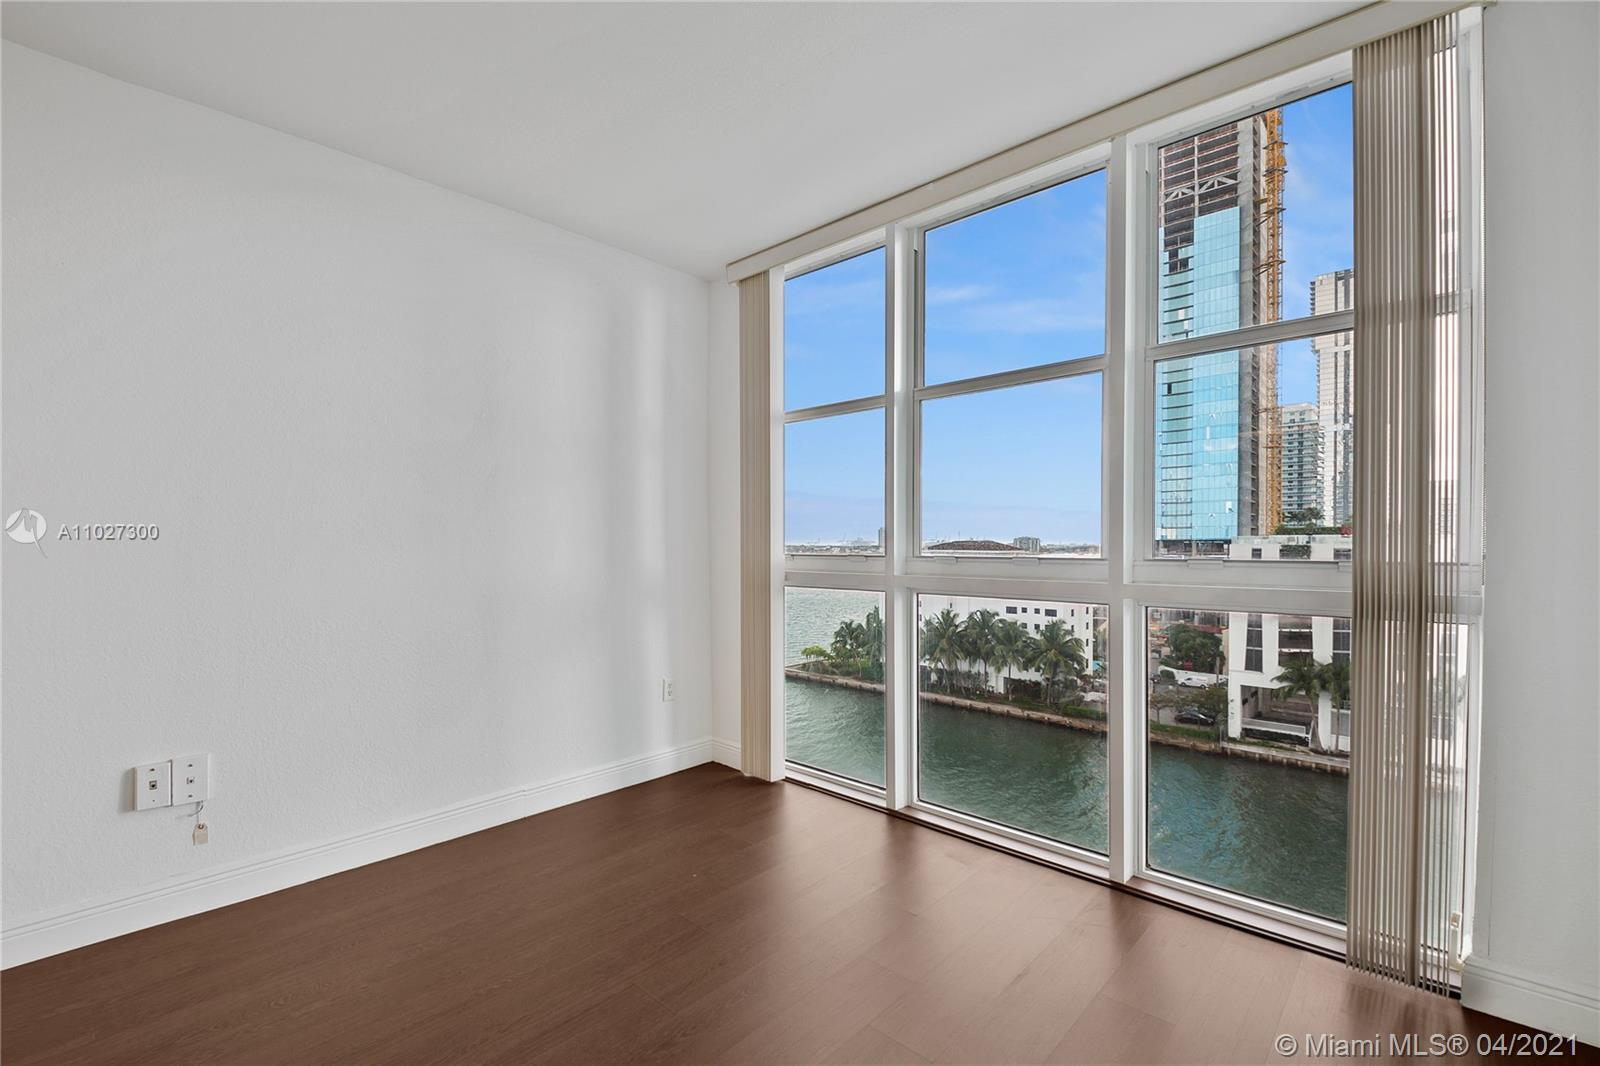 Perfect for investors - tenant in place until April 2022. Great one bedroom with amazing water views